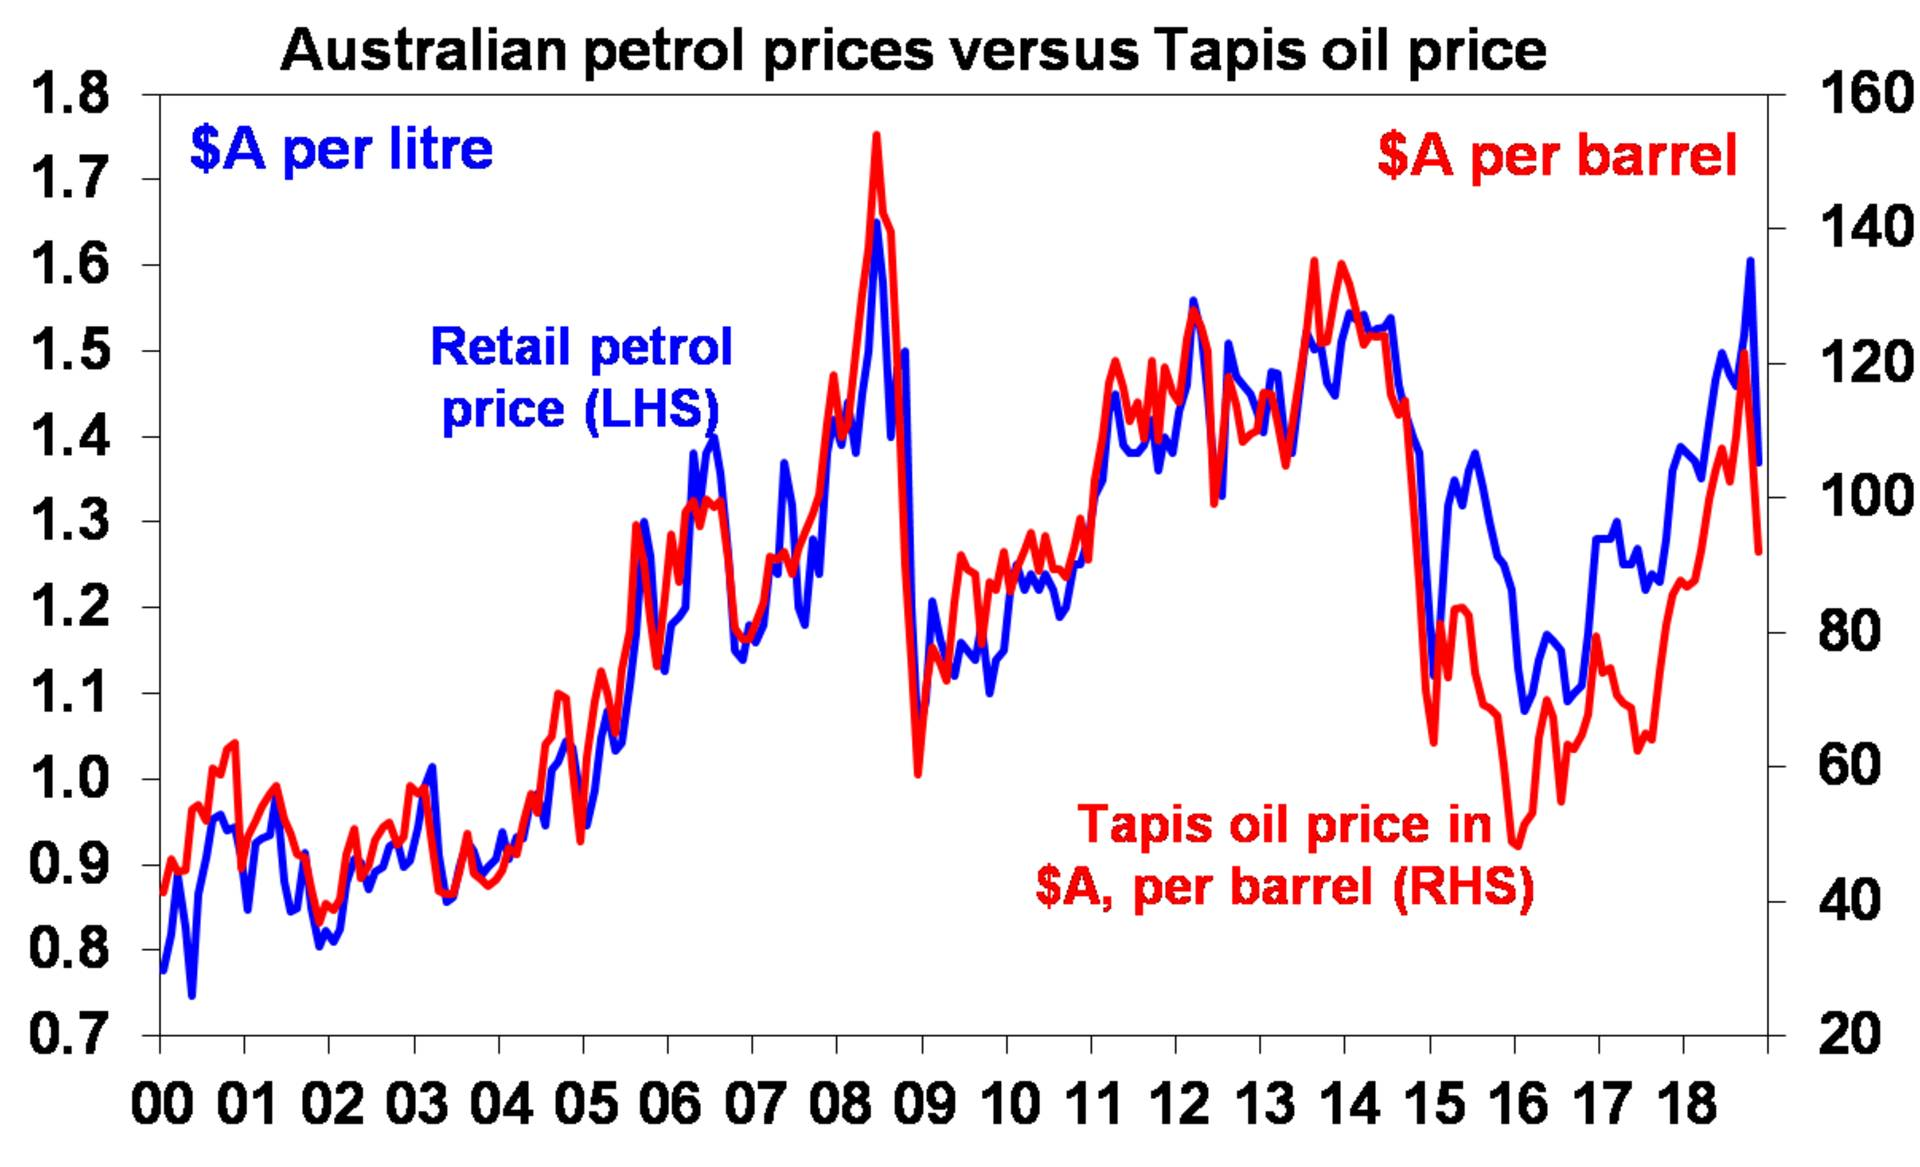 Australian petrol prices versus Tapis oil prices